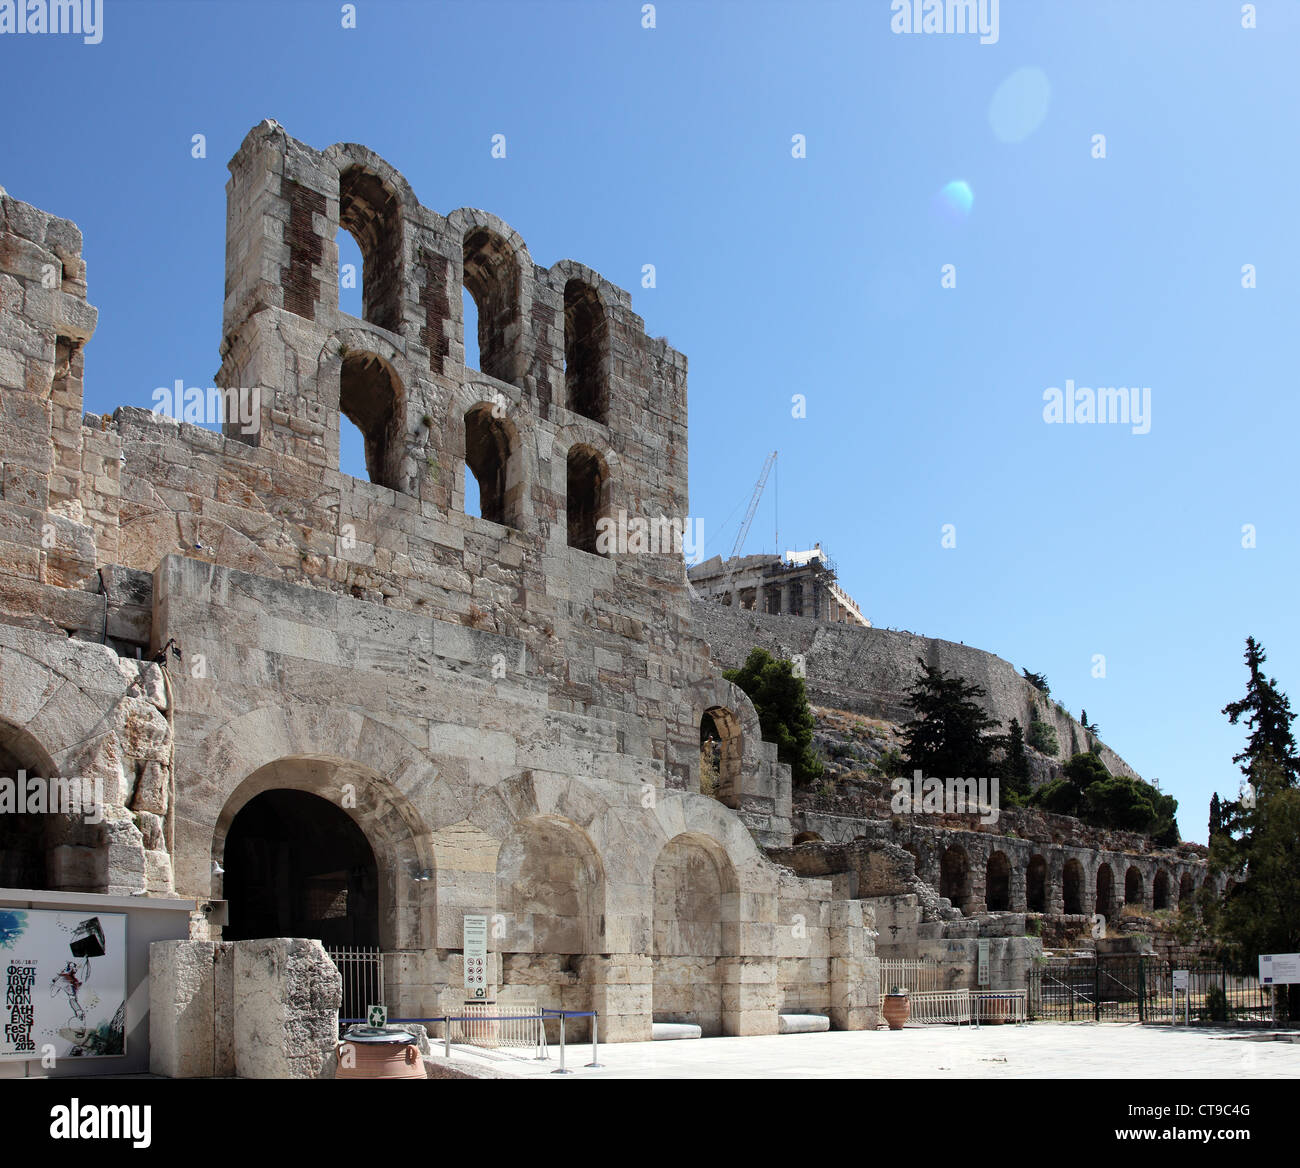 Entrance to Odeon of Herodes Atticus Lower Tier, Acropolis, Athens, Greece; - Stock Image